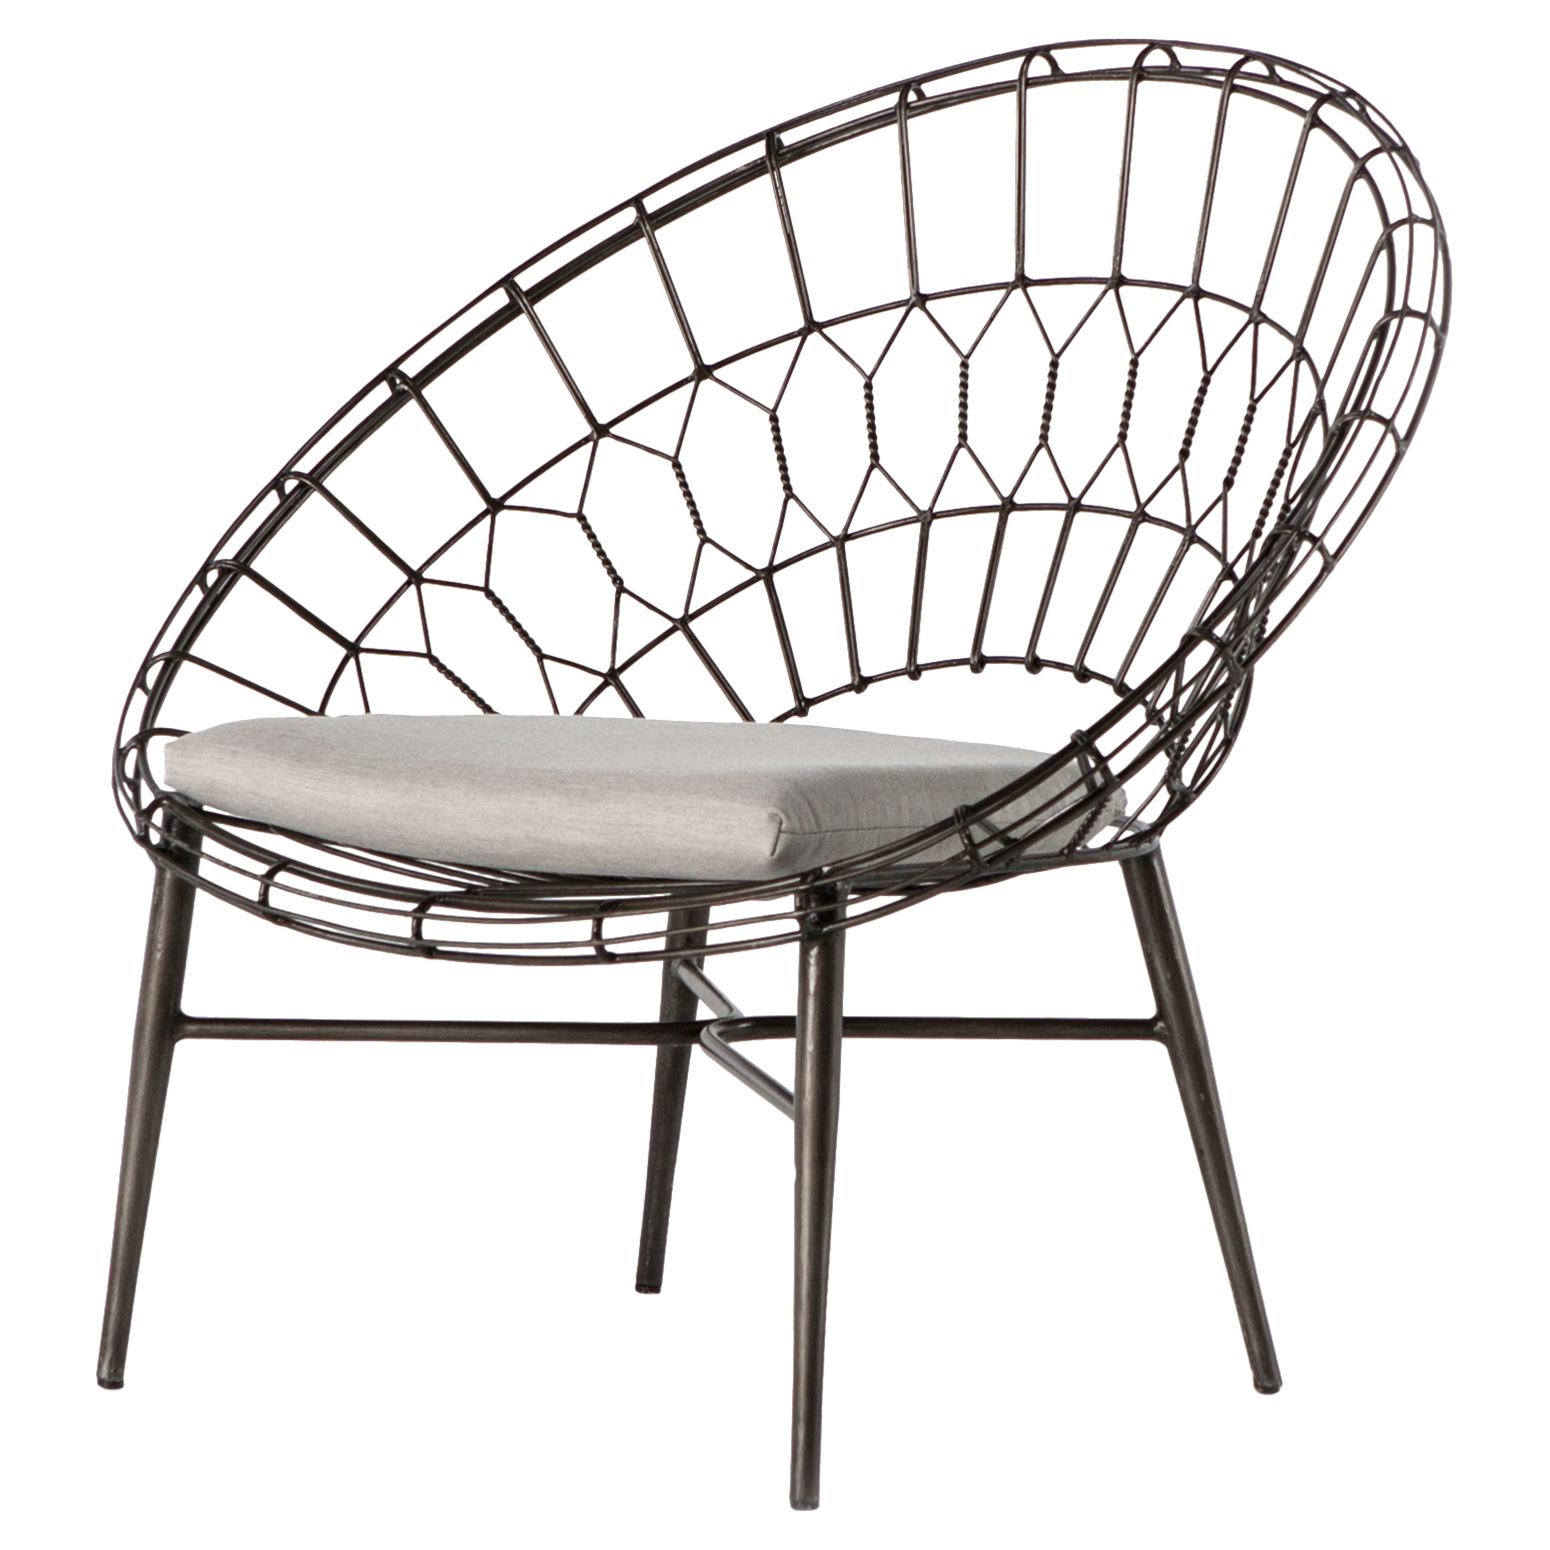 Albin Loft Sunburst Metal Outdoor Lounge Chair - Outdoor Lounge Chairs Kathy Kuo Home